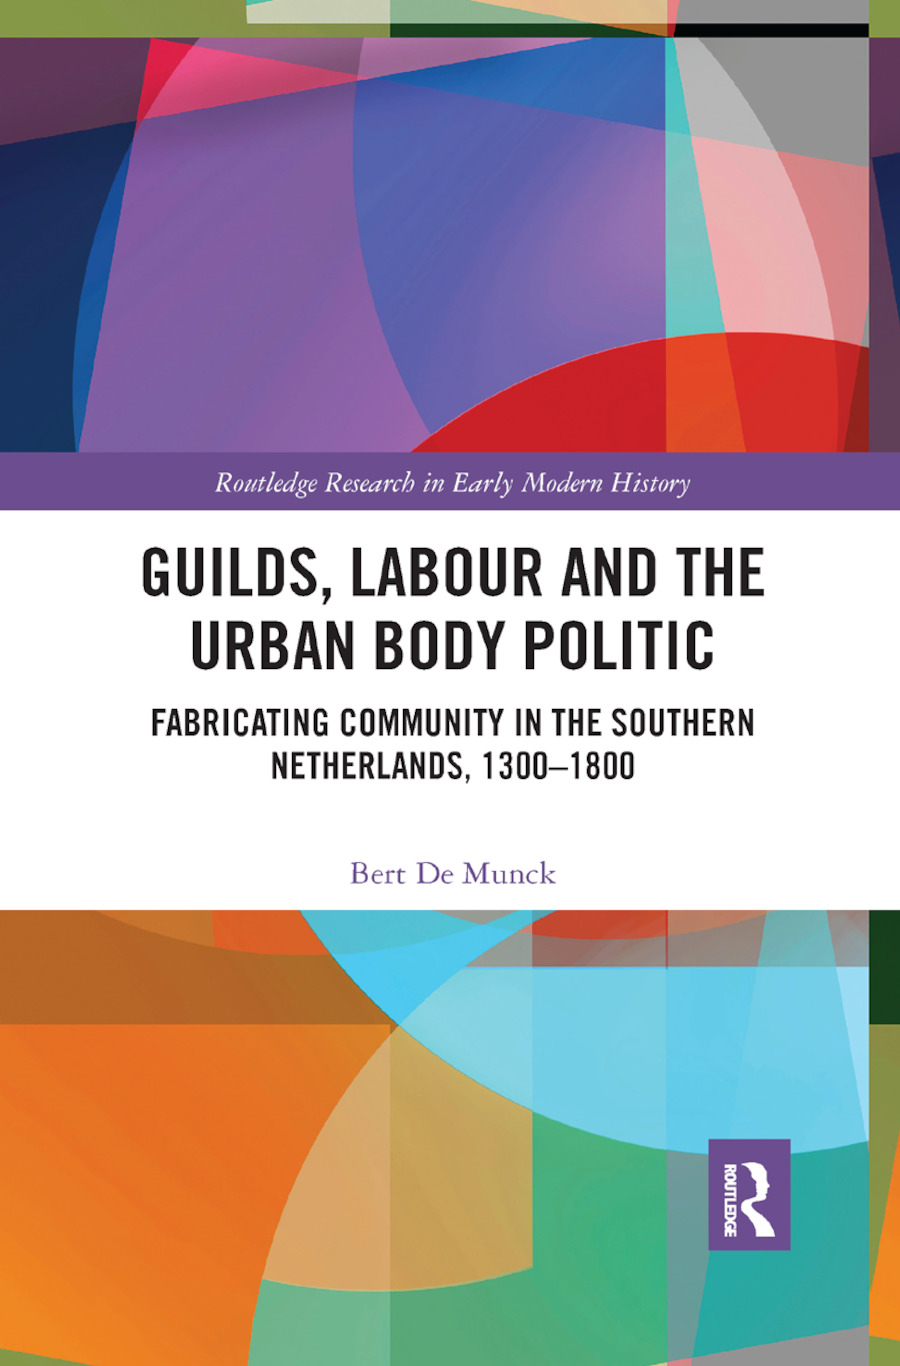 Guilds, Labour and the Urban Body Politic: Fabricating Community in the Southern Netherlands, 1300-1800 book cover